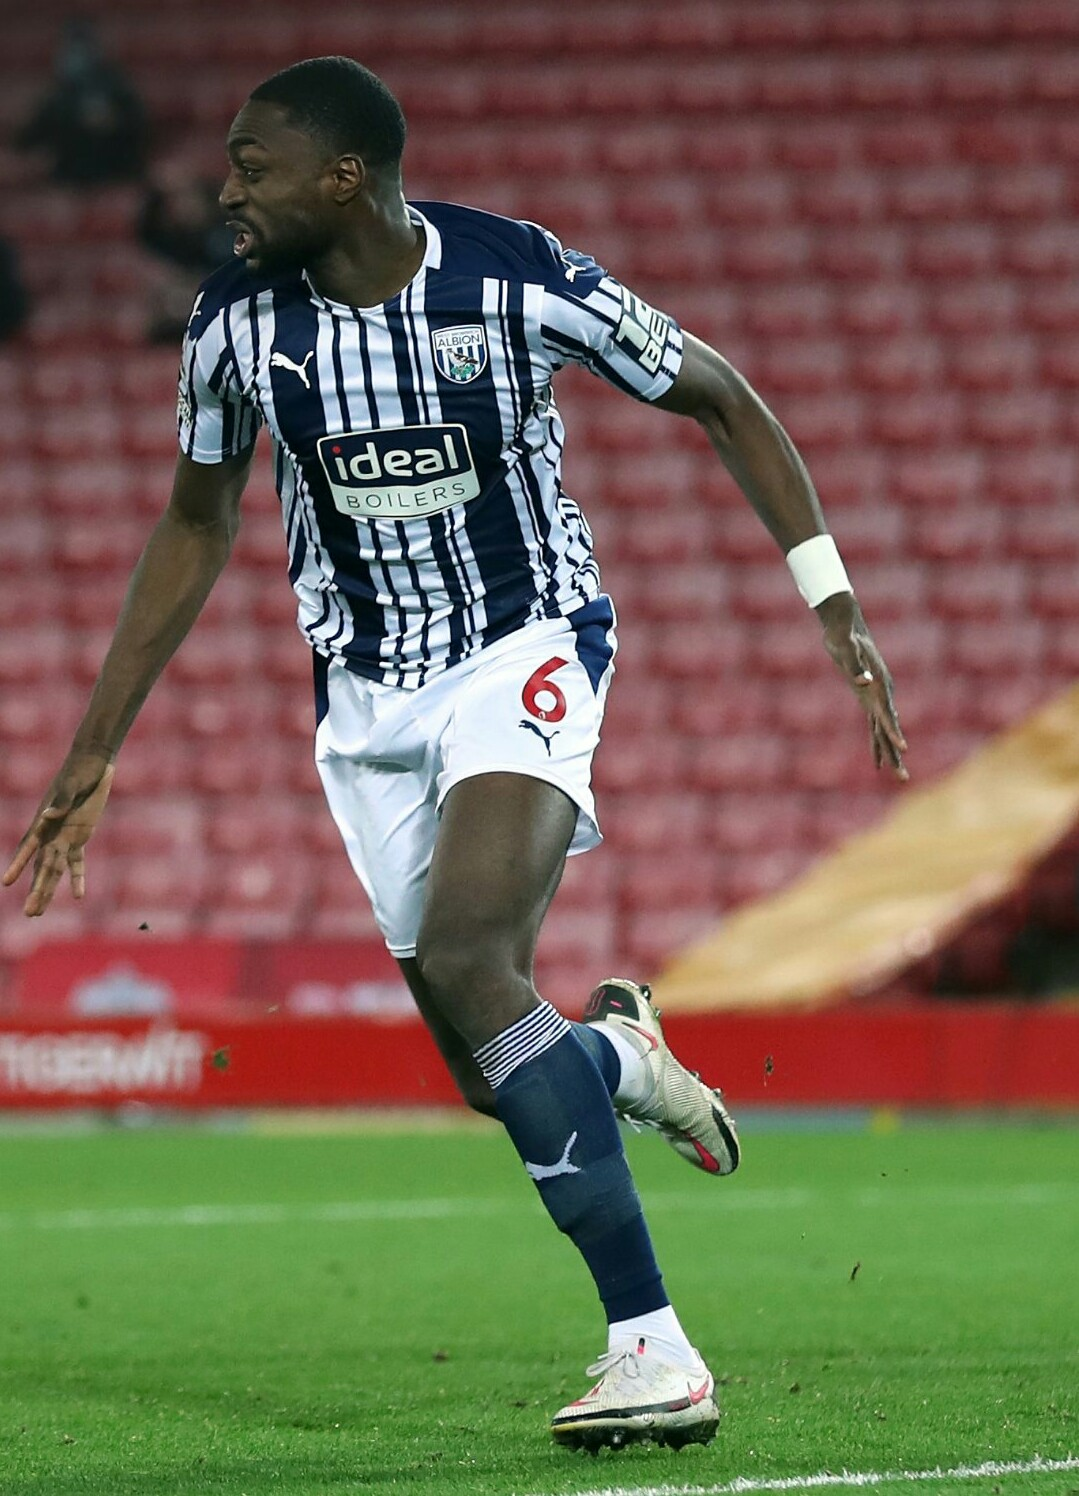 FA Cup: Ajayi On Target In West Brom's Loss At Blackpool, Aina's Fulham Defeat QPR Away